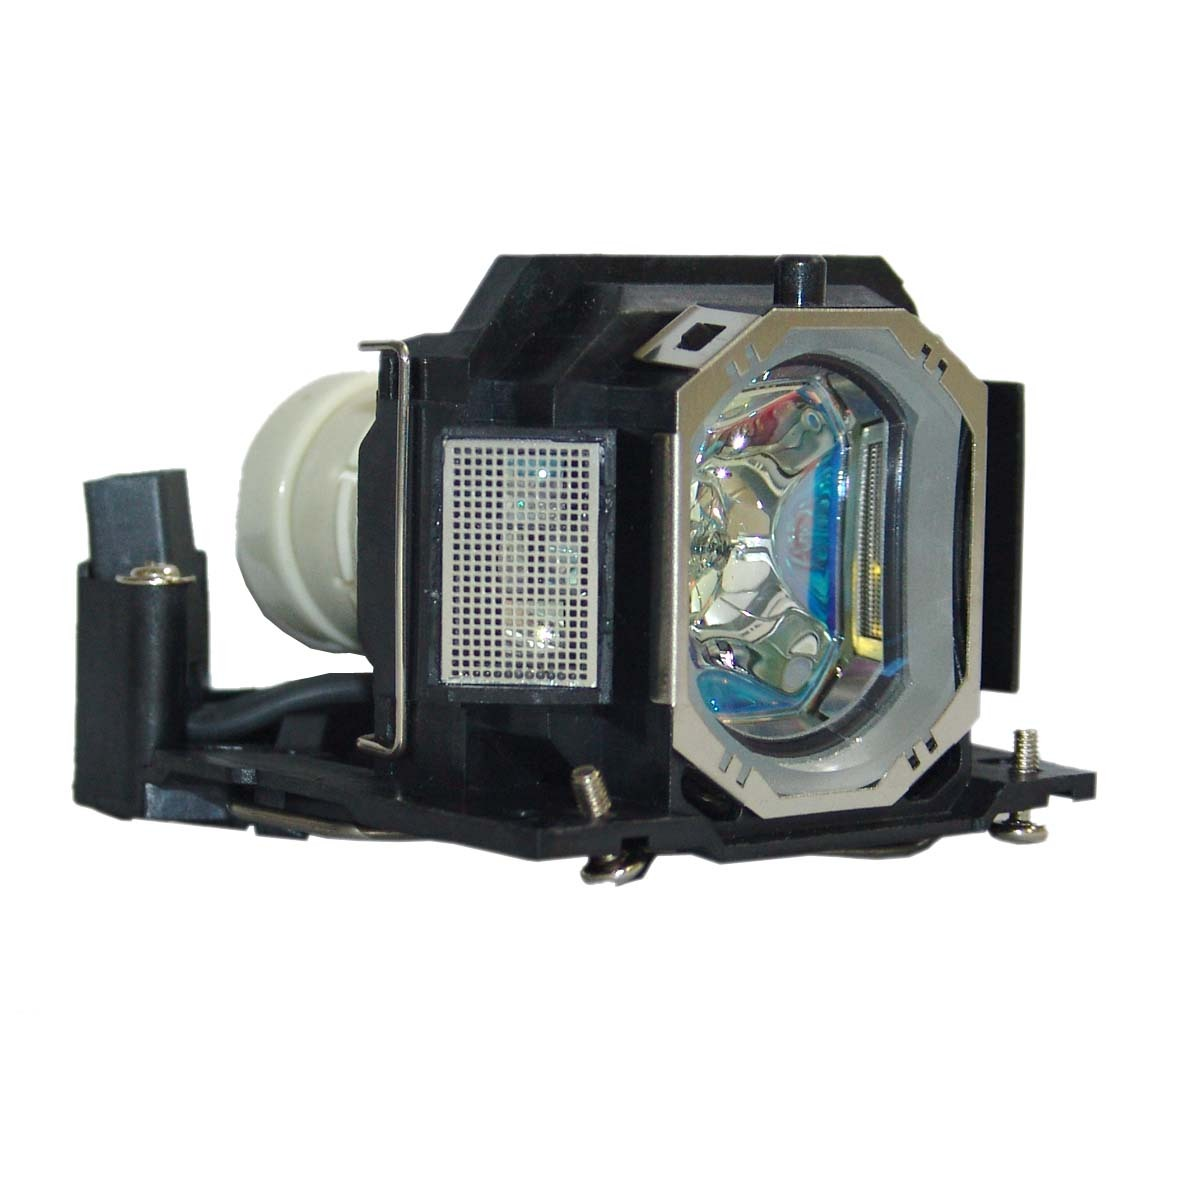 Primary image for Hitachi DT01191 Compatible Projector Lamp Module